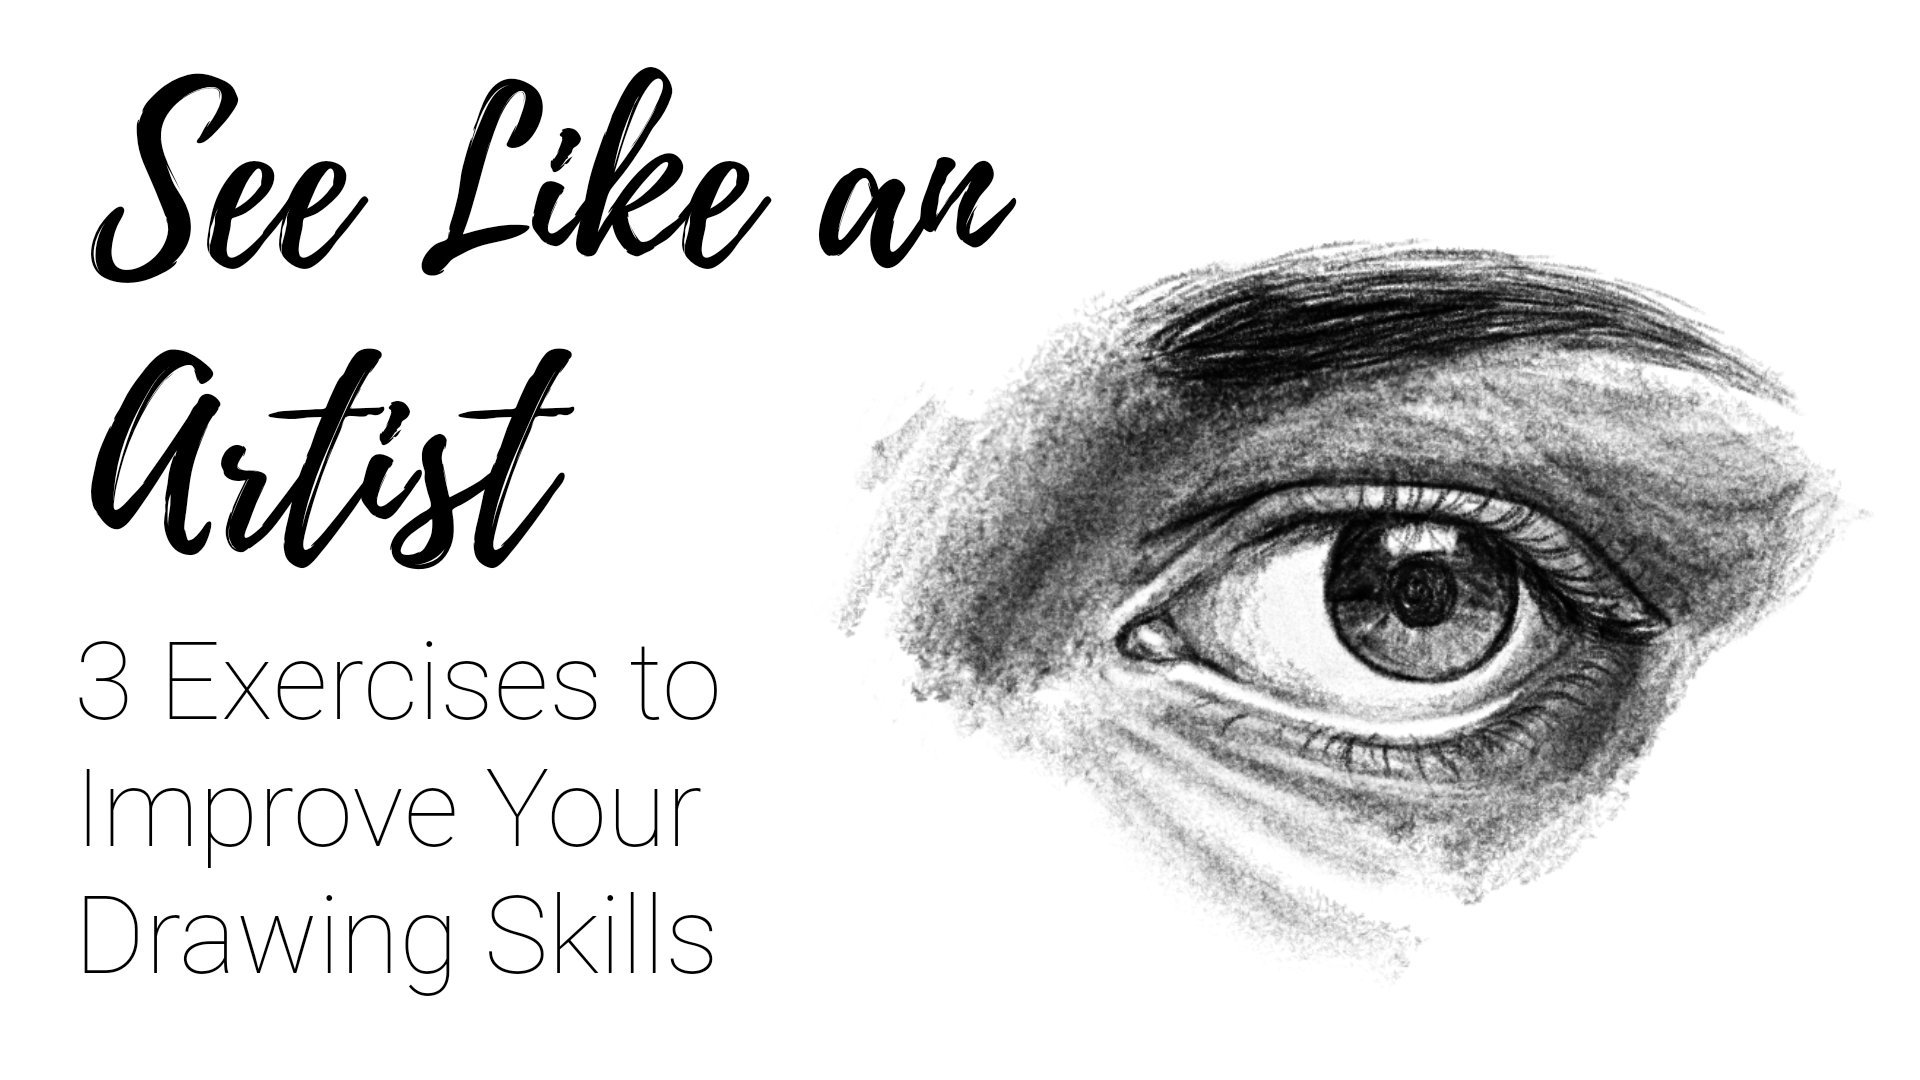 See Like an Artist: 3 Exercises to Improve Your Drawing Skills